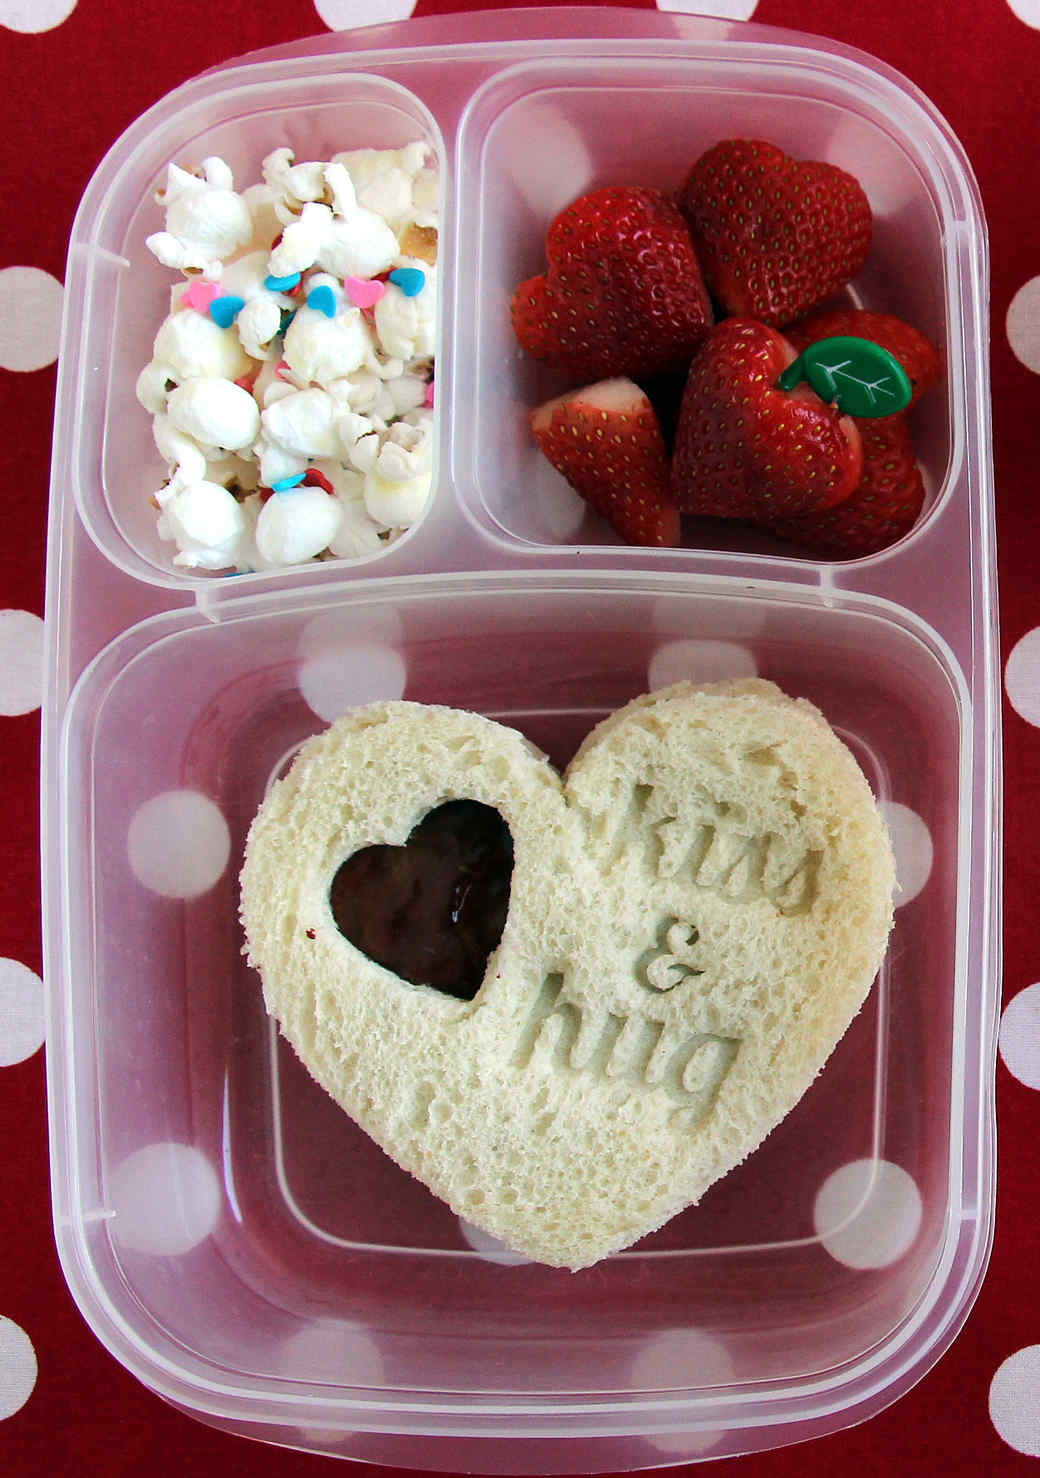 Show Your Love on Valentine's Day With a Sweet Bento Box Lunch